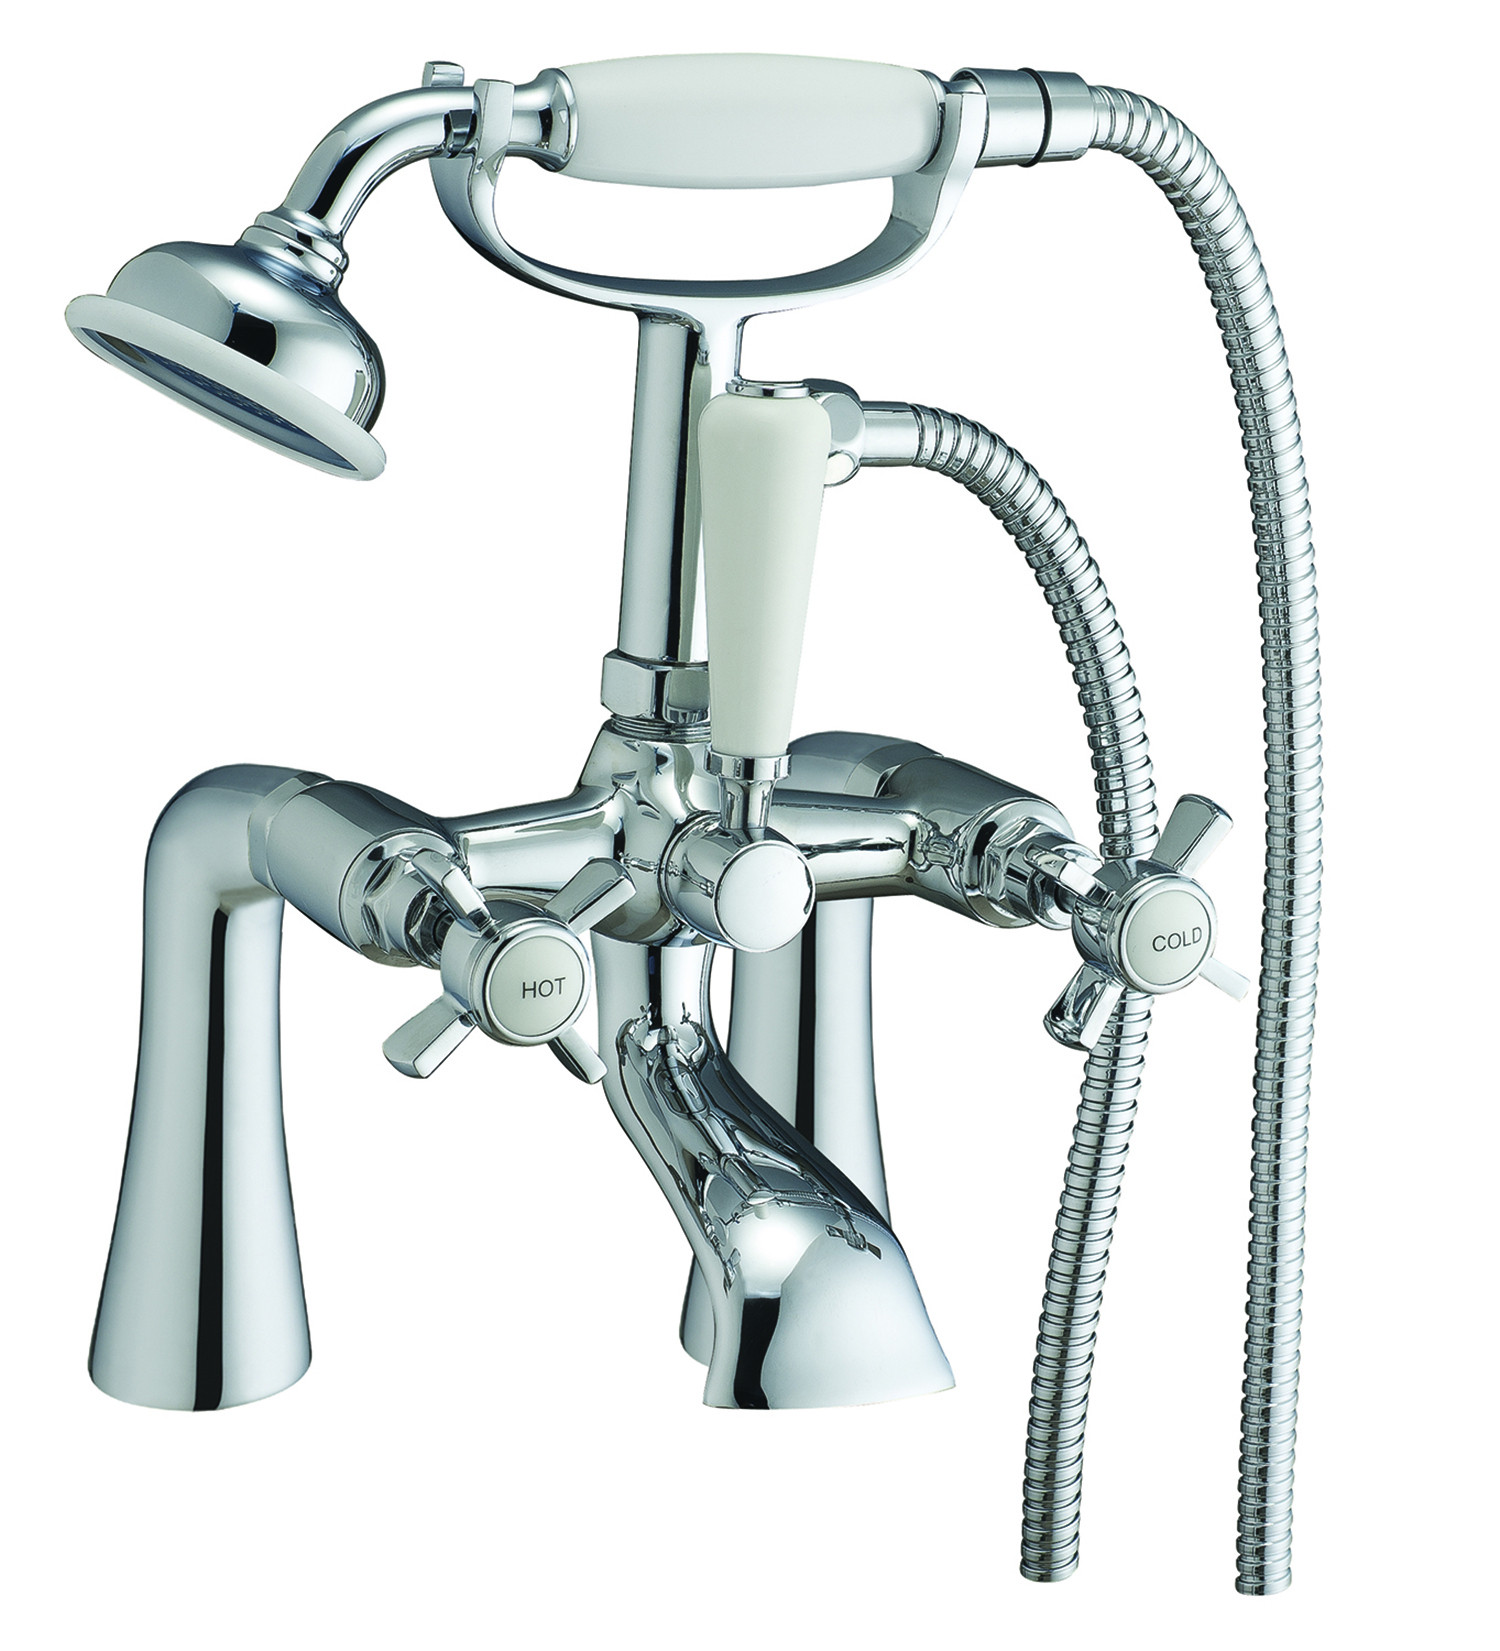 Victorian Bath Shower Mixer Frontlinebathrooms Com